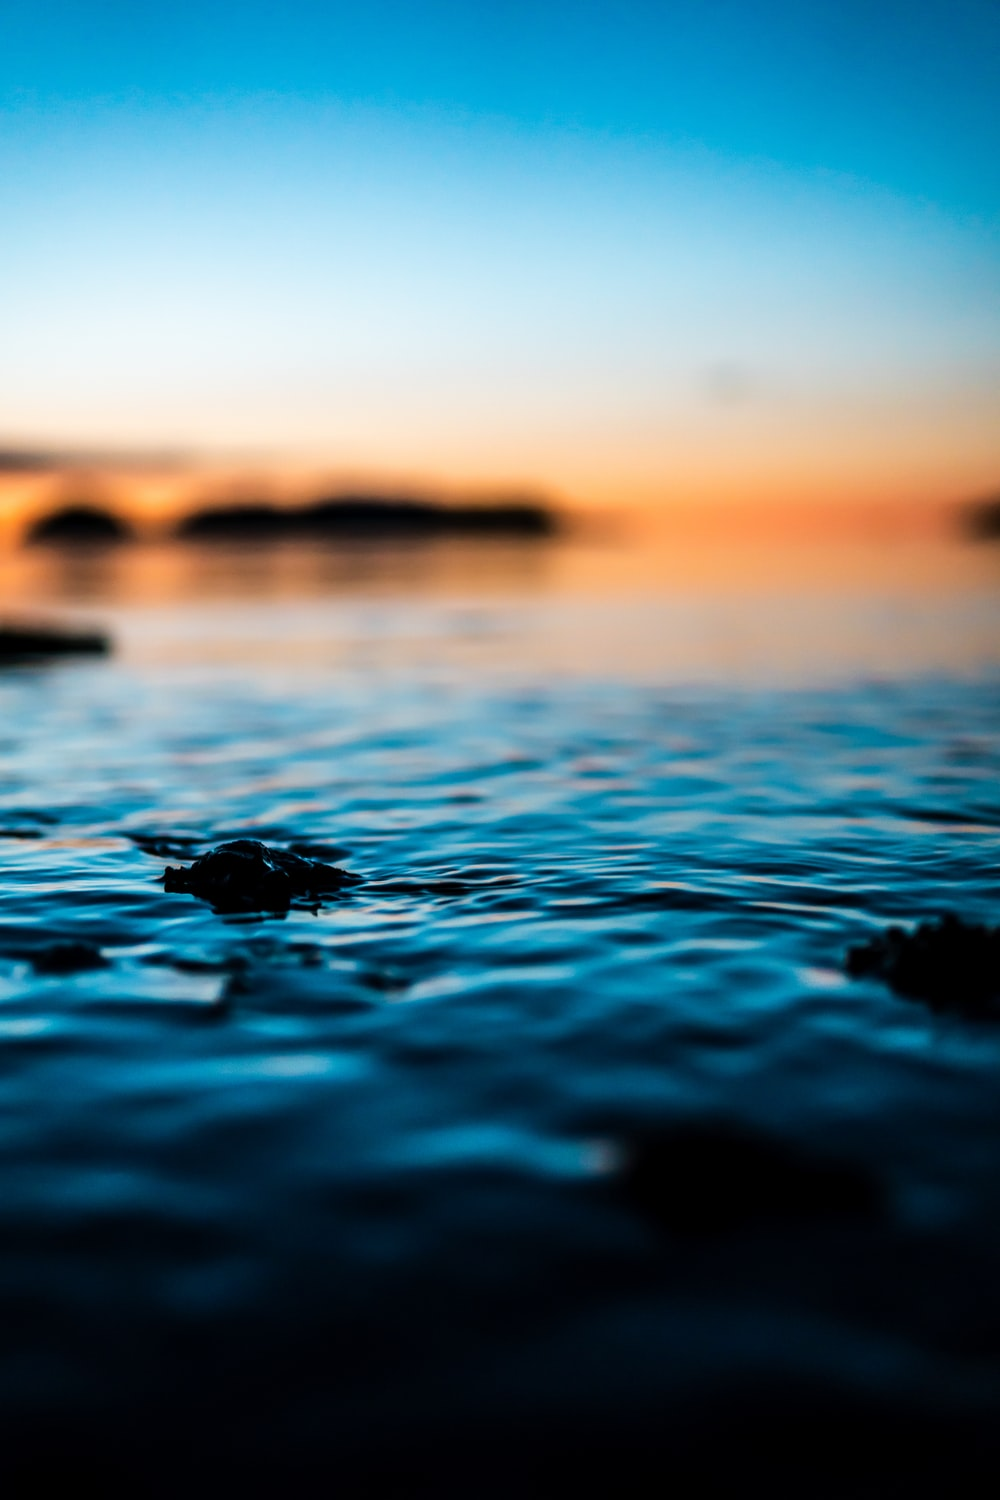 water on body of water during sunset